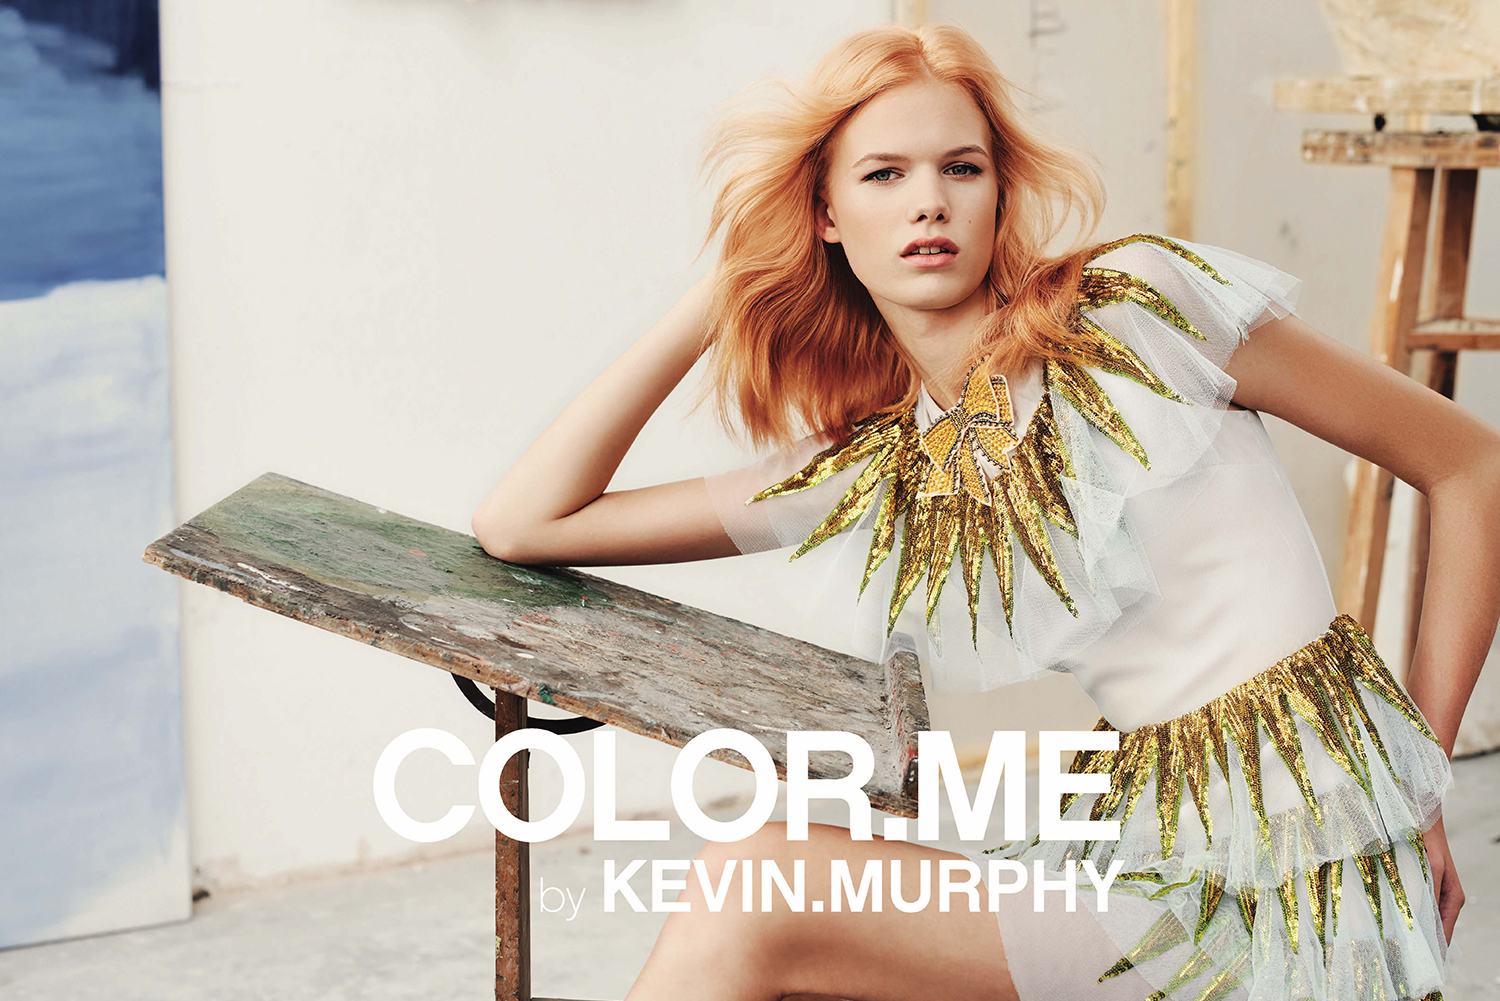 kevin murphy Friseur produkte in bayreuth